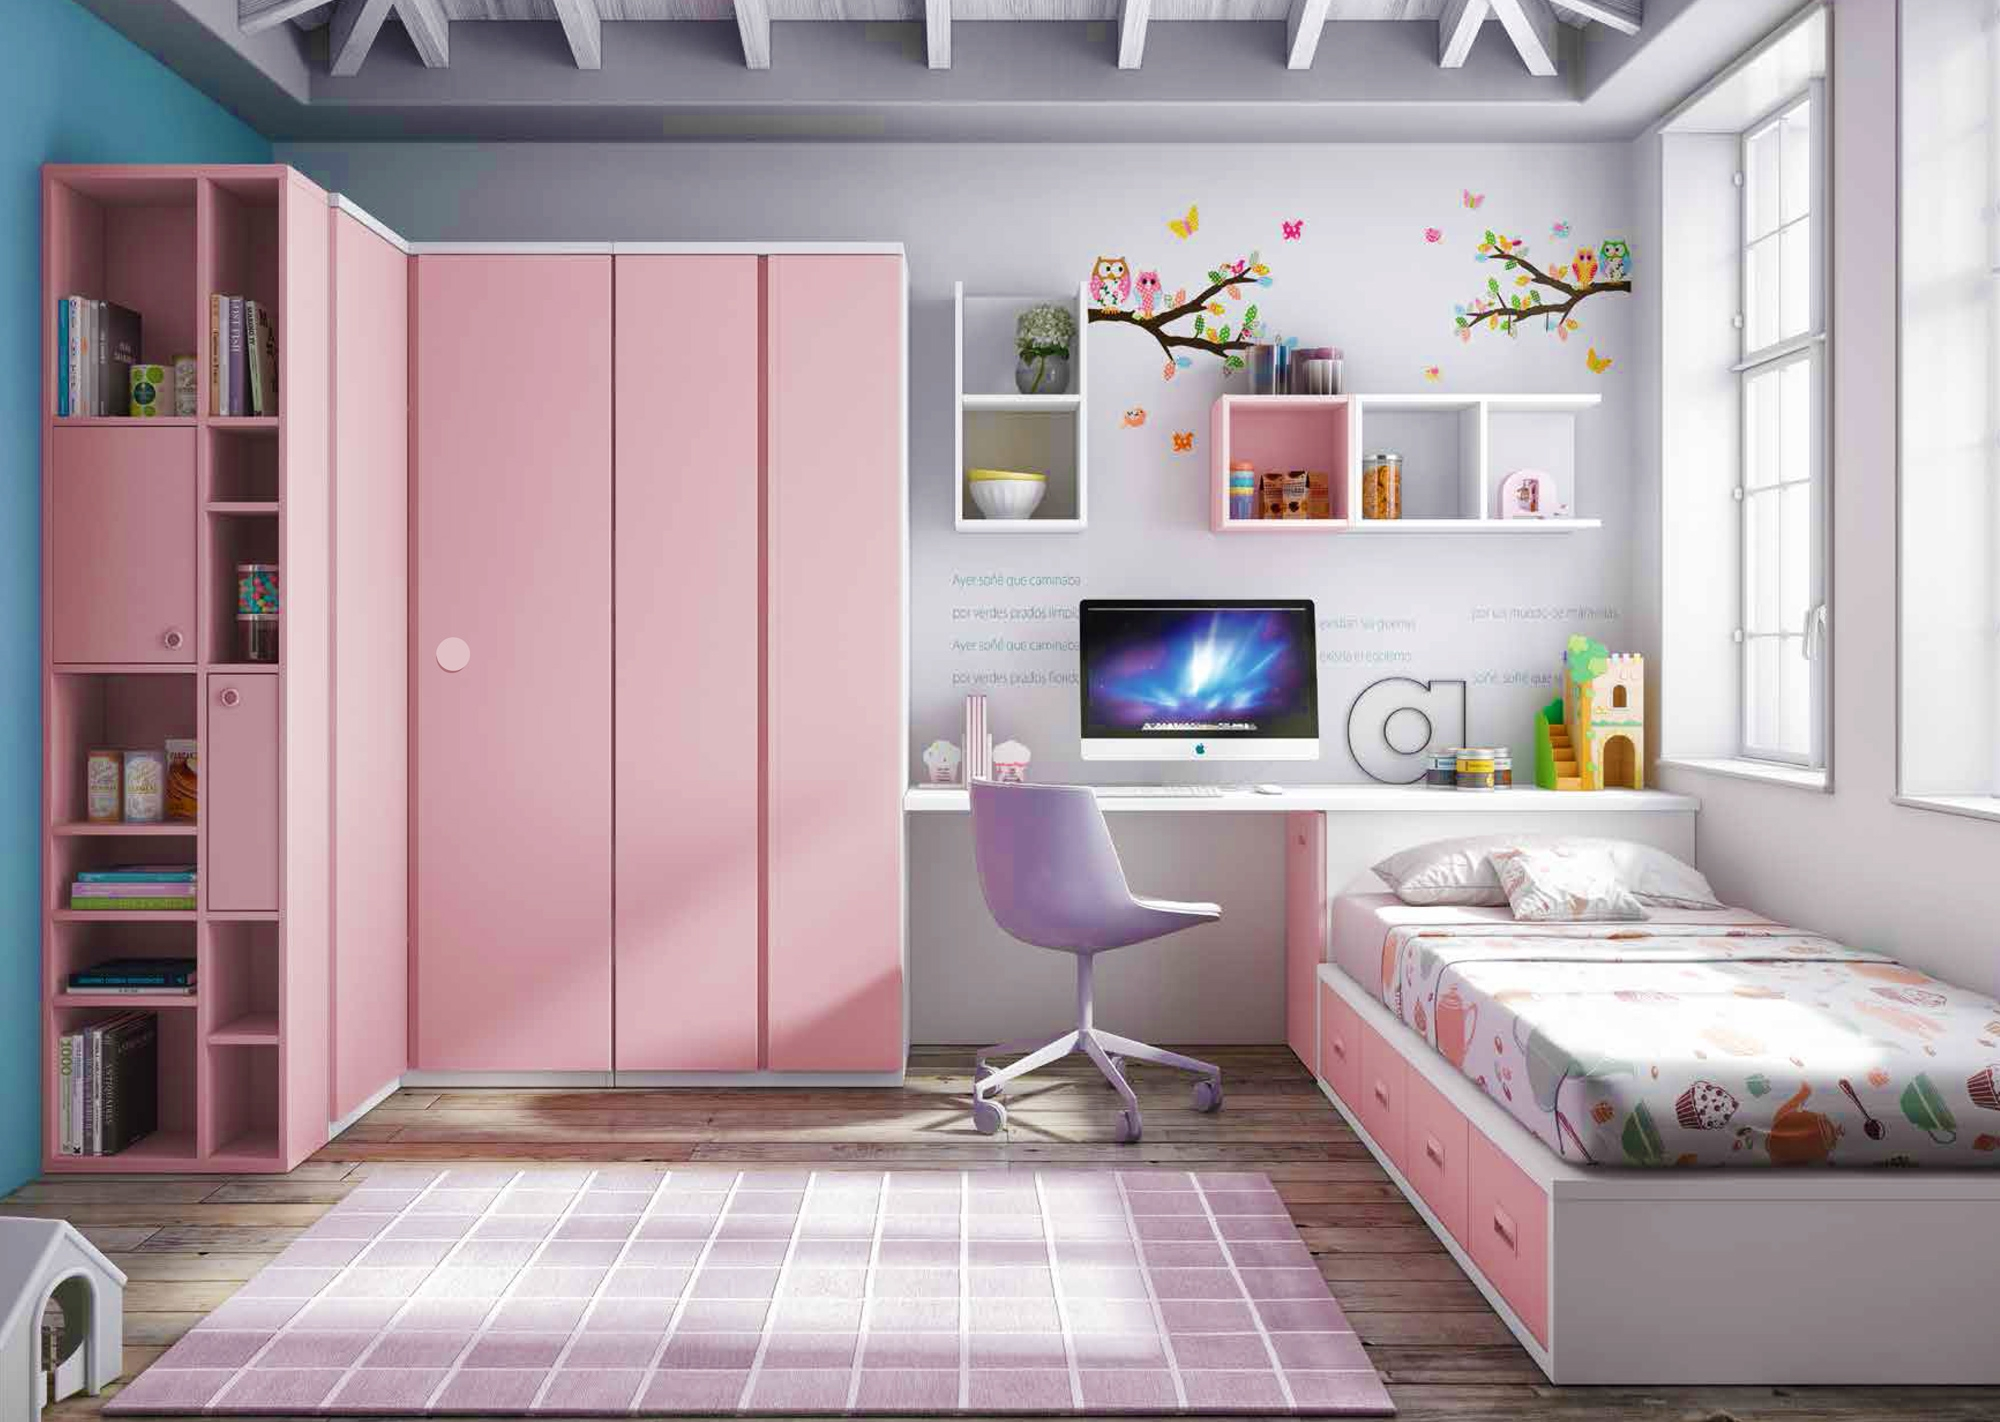 chambre enfant complete personnaliser au choix glicerio so nuit. Black Bedroom Furniture Sets. Home Design Ideas